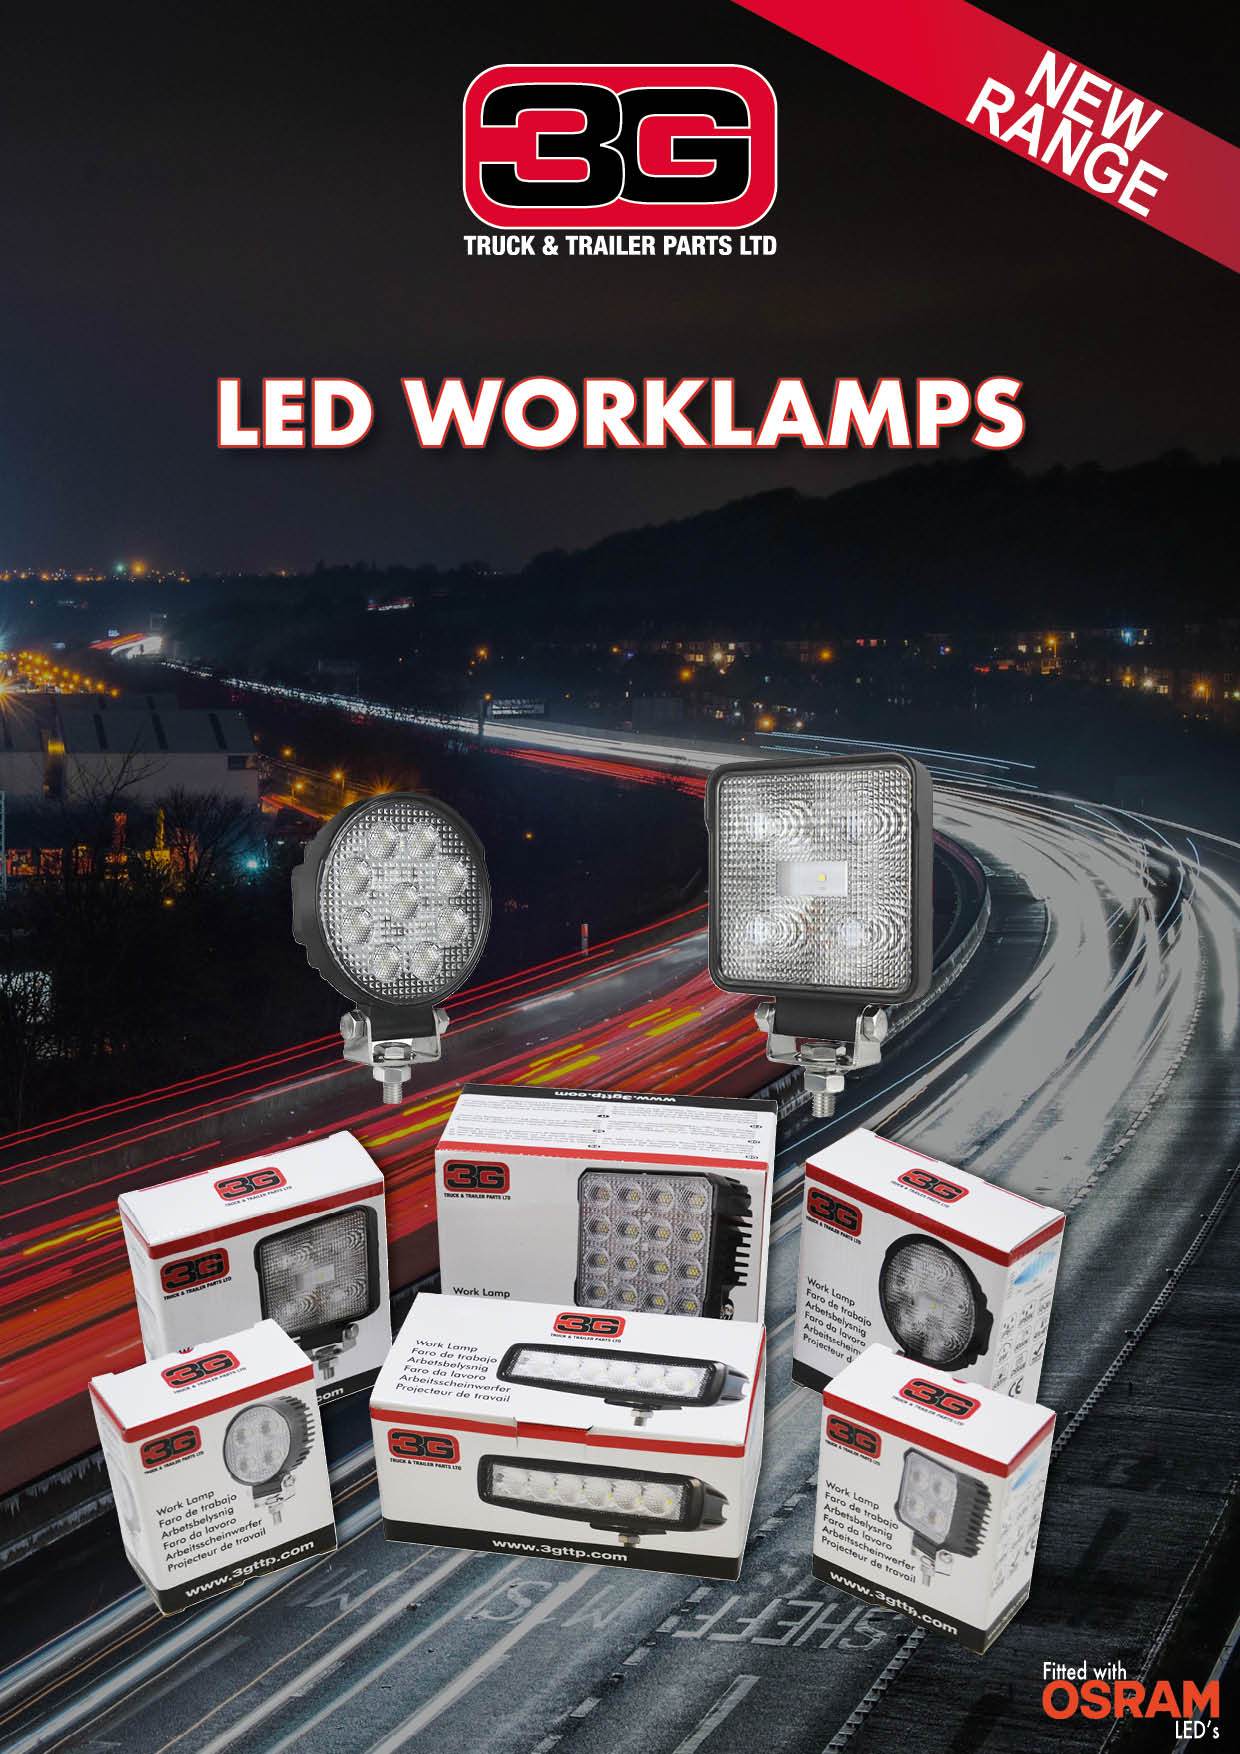 LED Work Lamps Image coming soon. Click to view full catalogue